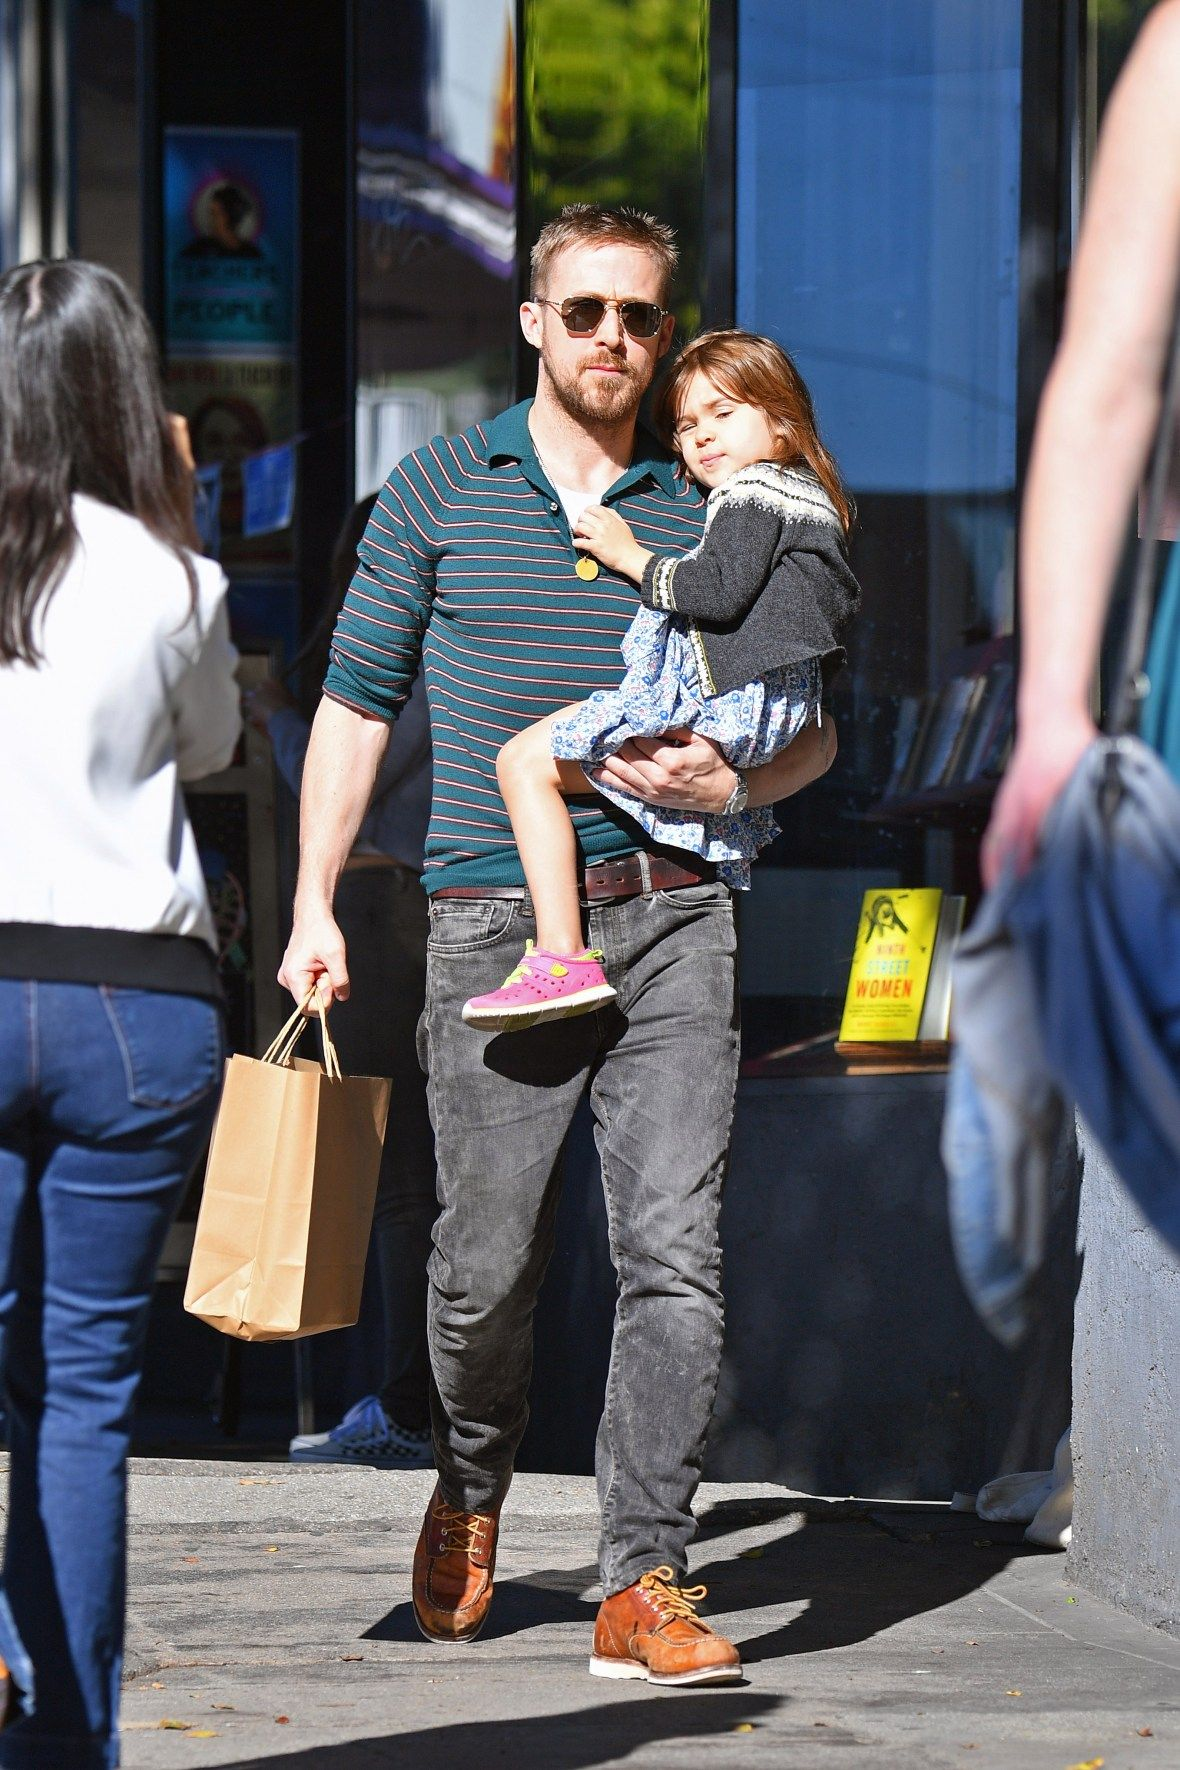 Ryan Gosling And Eva Mendes Daughter Esmeralda Looks So Grown Up Ryan Gosling Style Ryan Gosling Ryan Gosling Kids